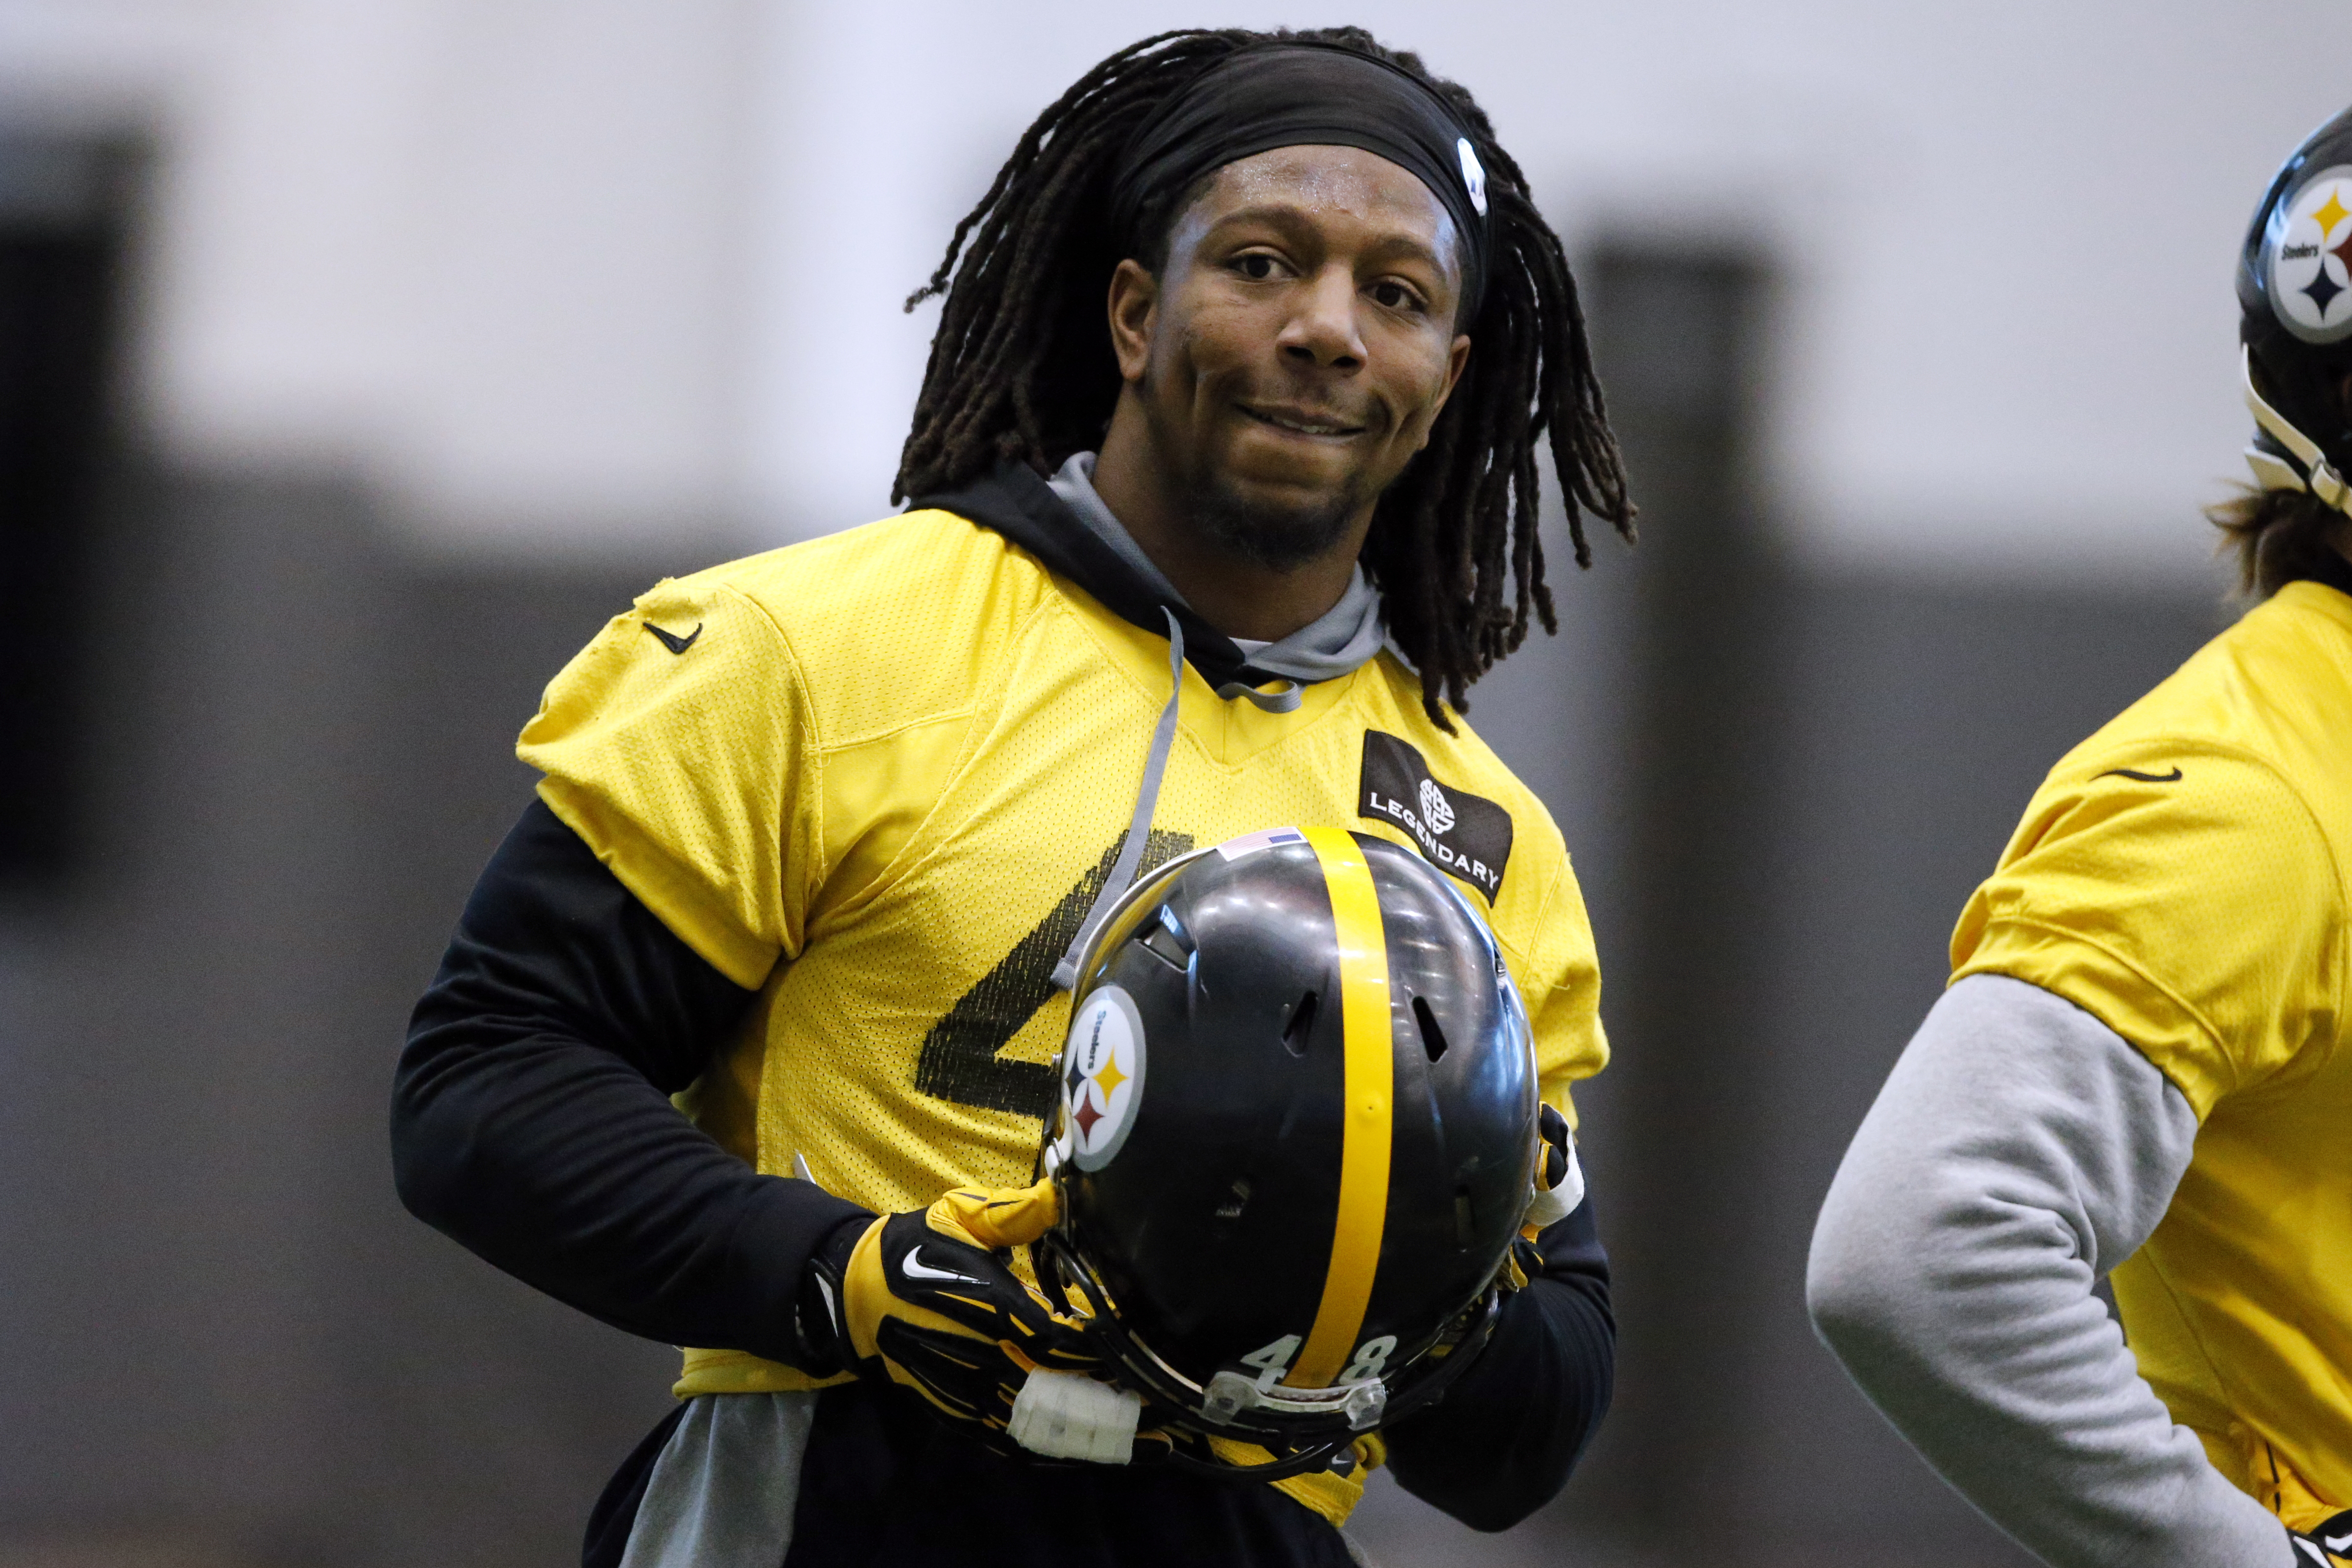 FILE - In this Jan. 13, 2016, file photo, Pittsburgh Steelers linebacker Bud Dupree takes a break during an NFL football practice, in Pittsburgh.  The training wheels are off for Bud Dupree. Finally. The Steelers linebacker heads into Sunday's game agains